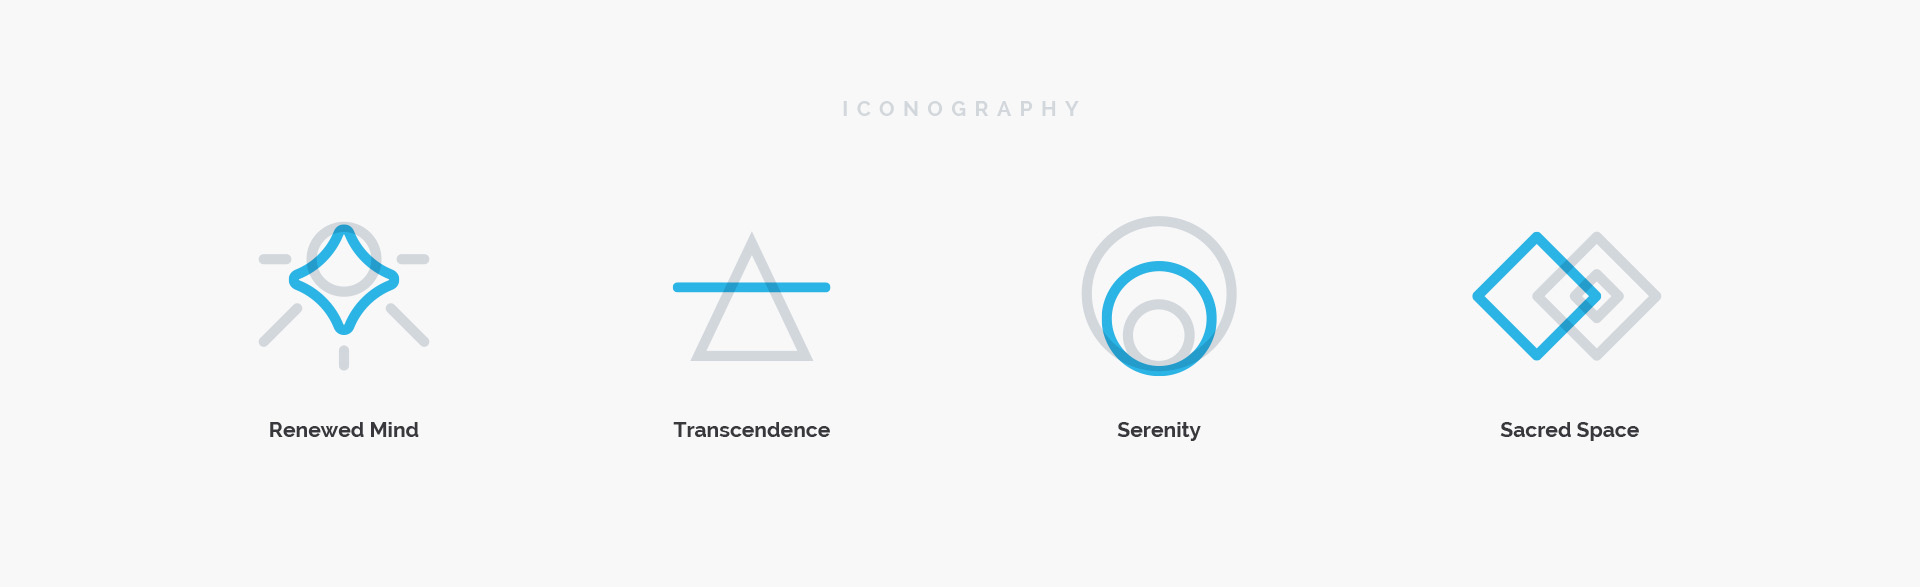 Graphic icons and illustrations designed for Lux representing Renewed Mind, Transcendence, Serenity, and Sacred Space.